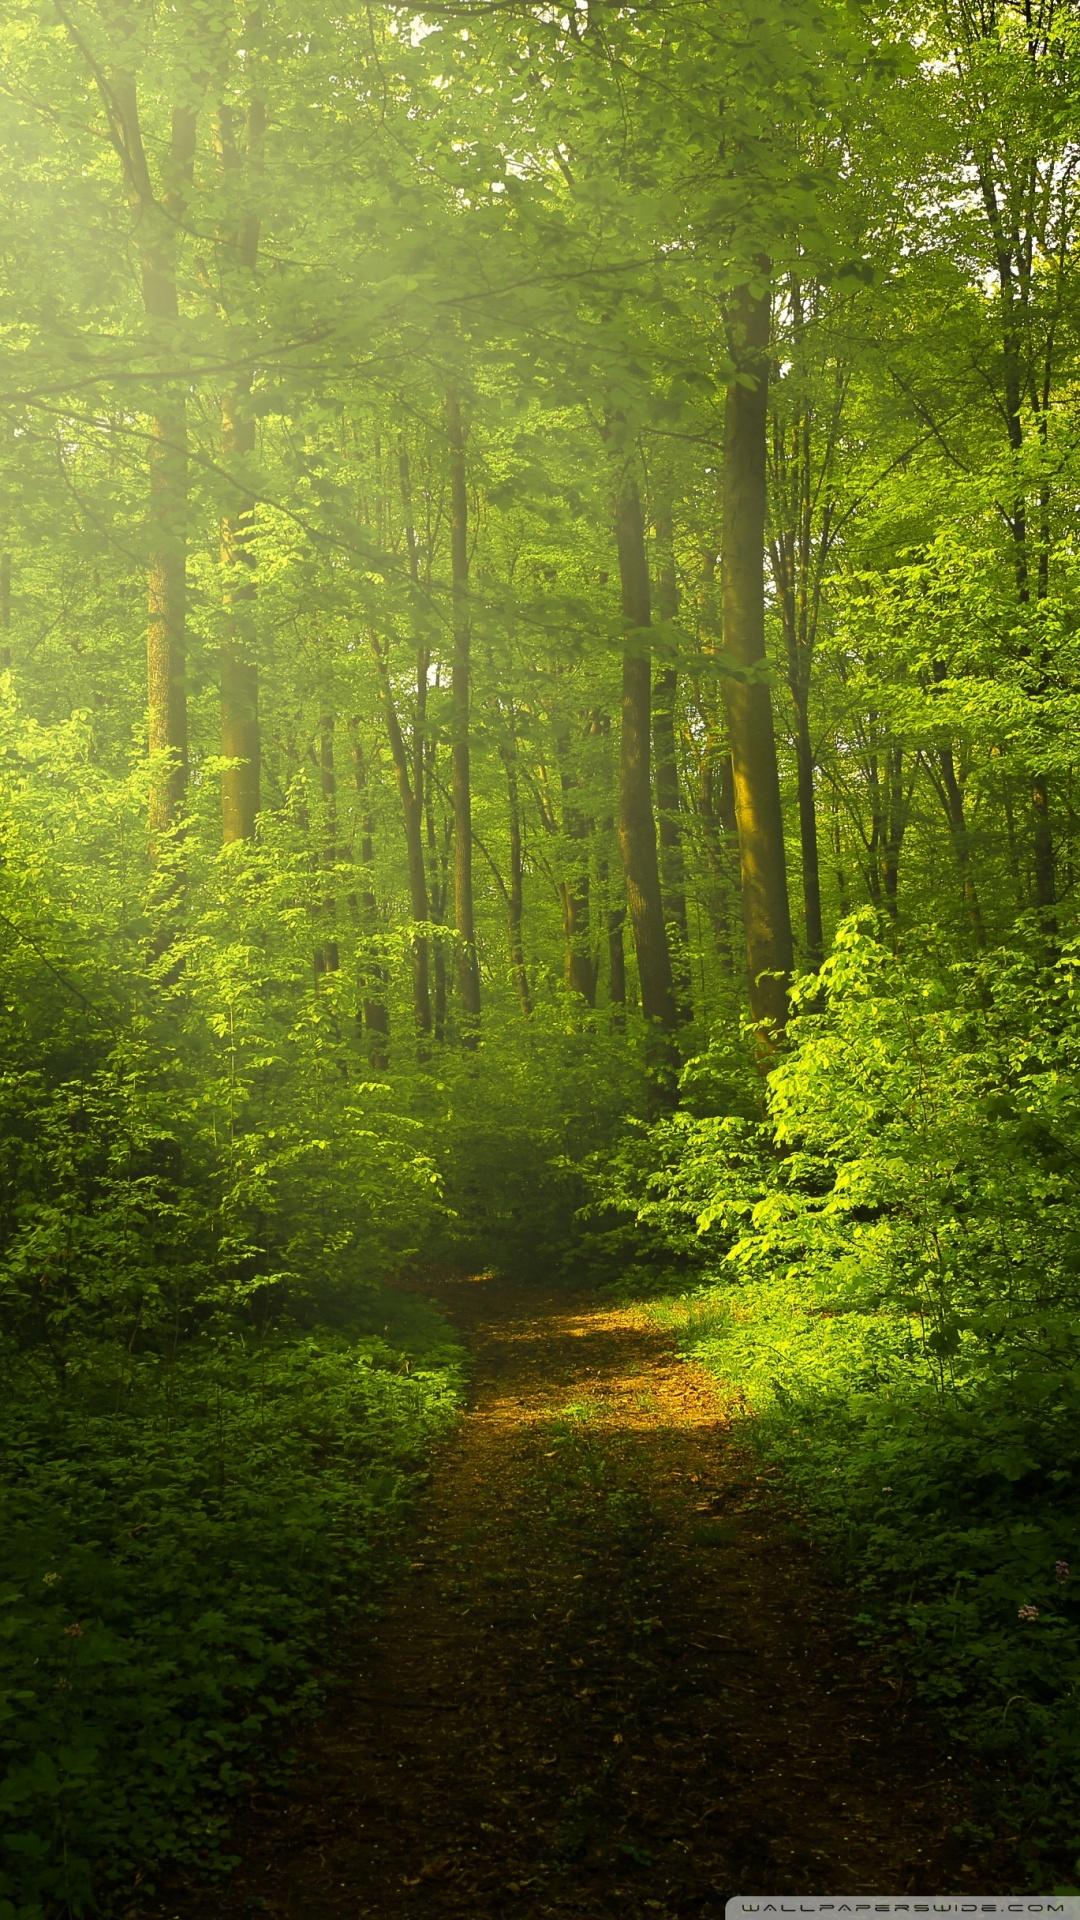 Beautiful Wallpapers Of Nature For Mobile: Nature Wallpaper Beautiful Nature Image Green Forest